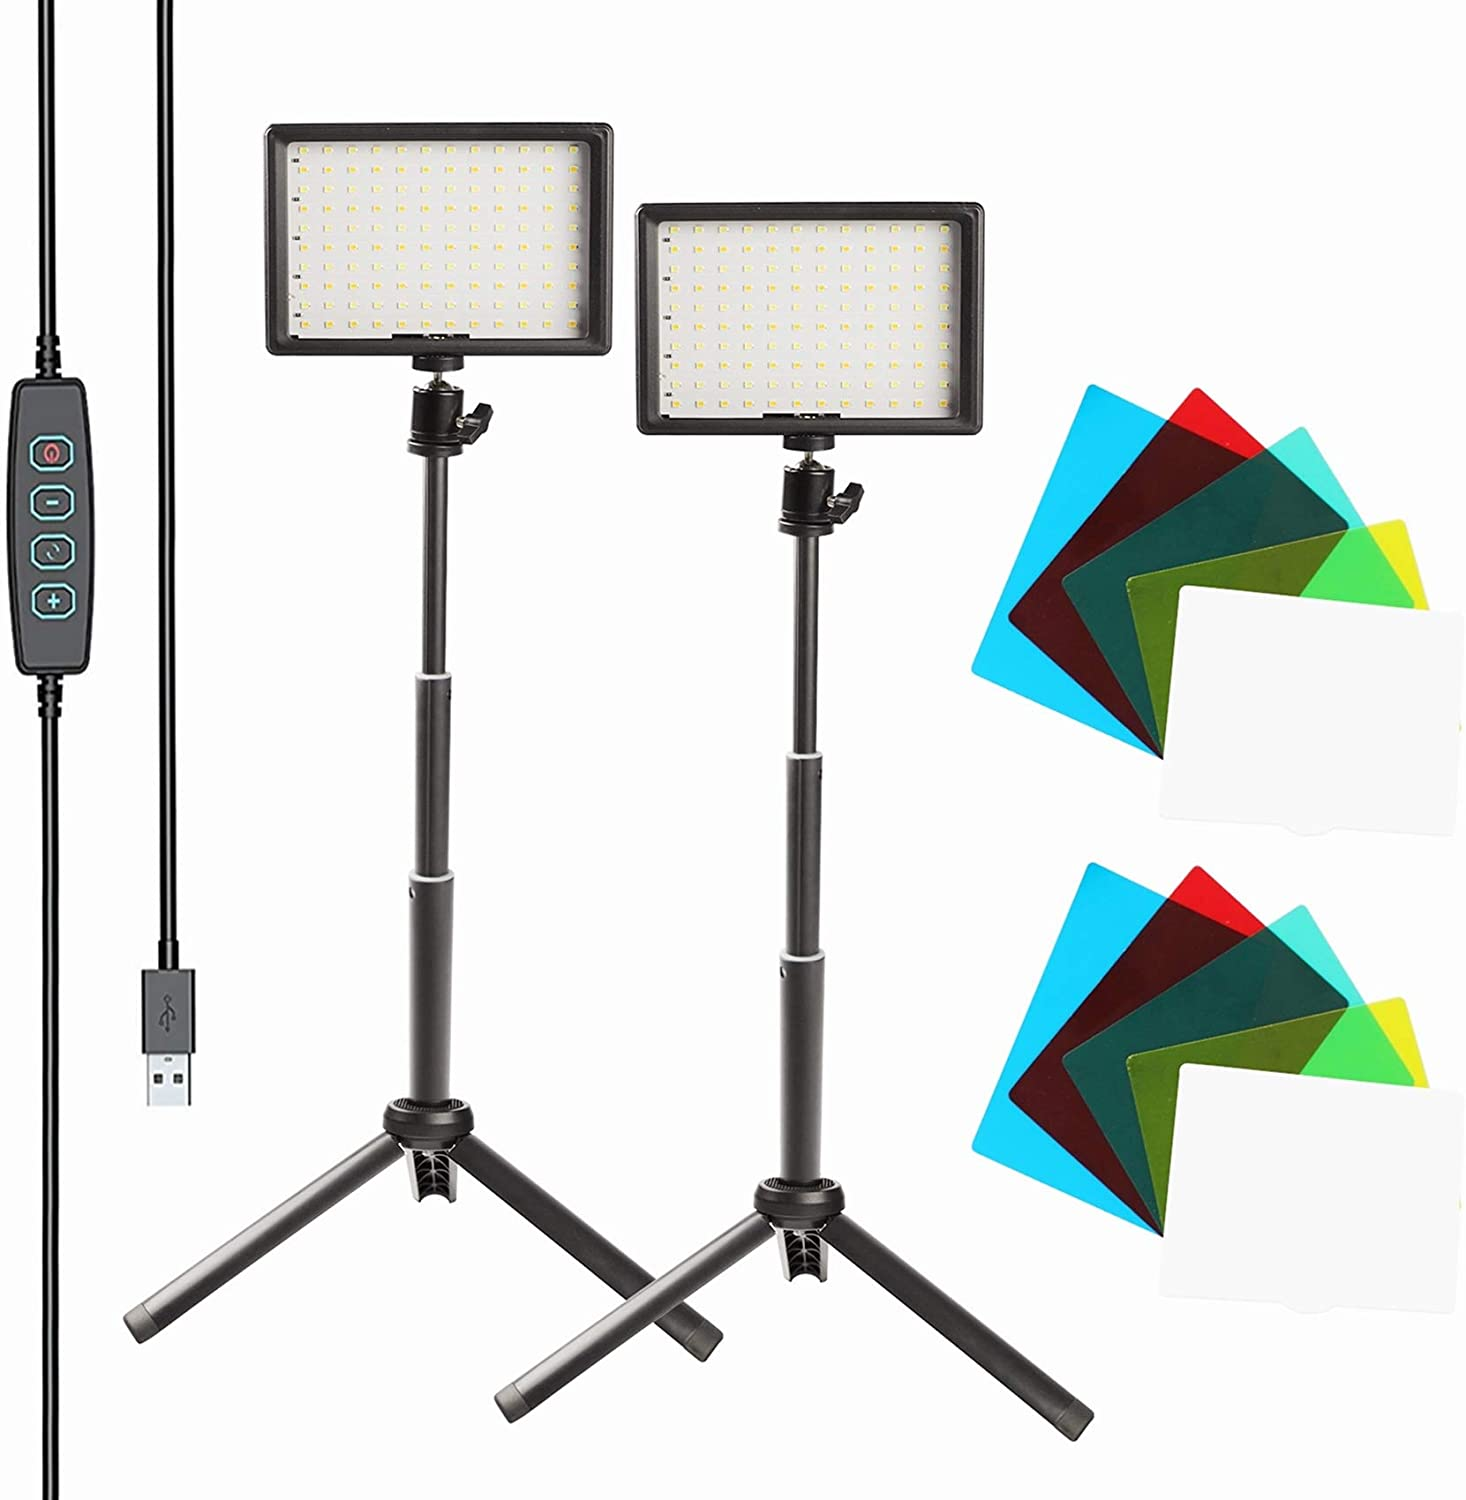 """KEAYEO 2-Pack 7"""" Portable Photography Video Light Kit Dimmable 5800K 120 Lamp Beads Super Bright LED Fill Light with Tripod Stand and 5 Color Filters for Meeting Table Top Photo Video Studio Shooting"""